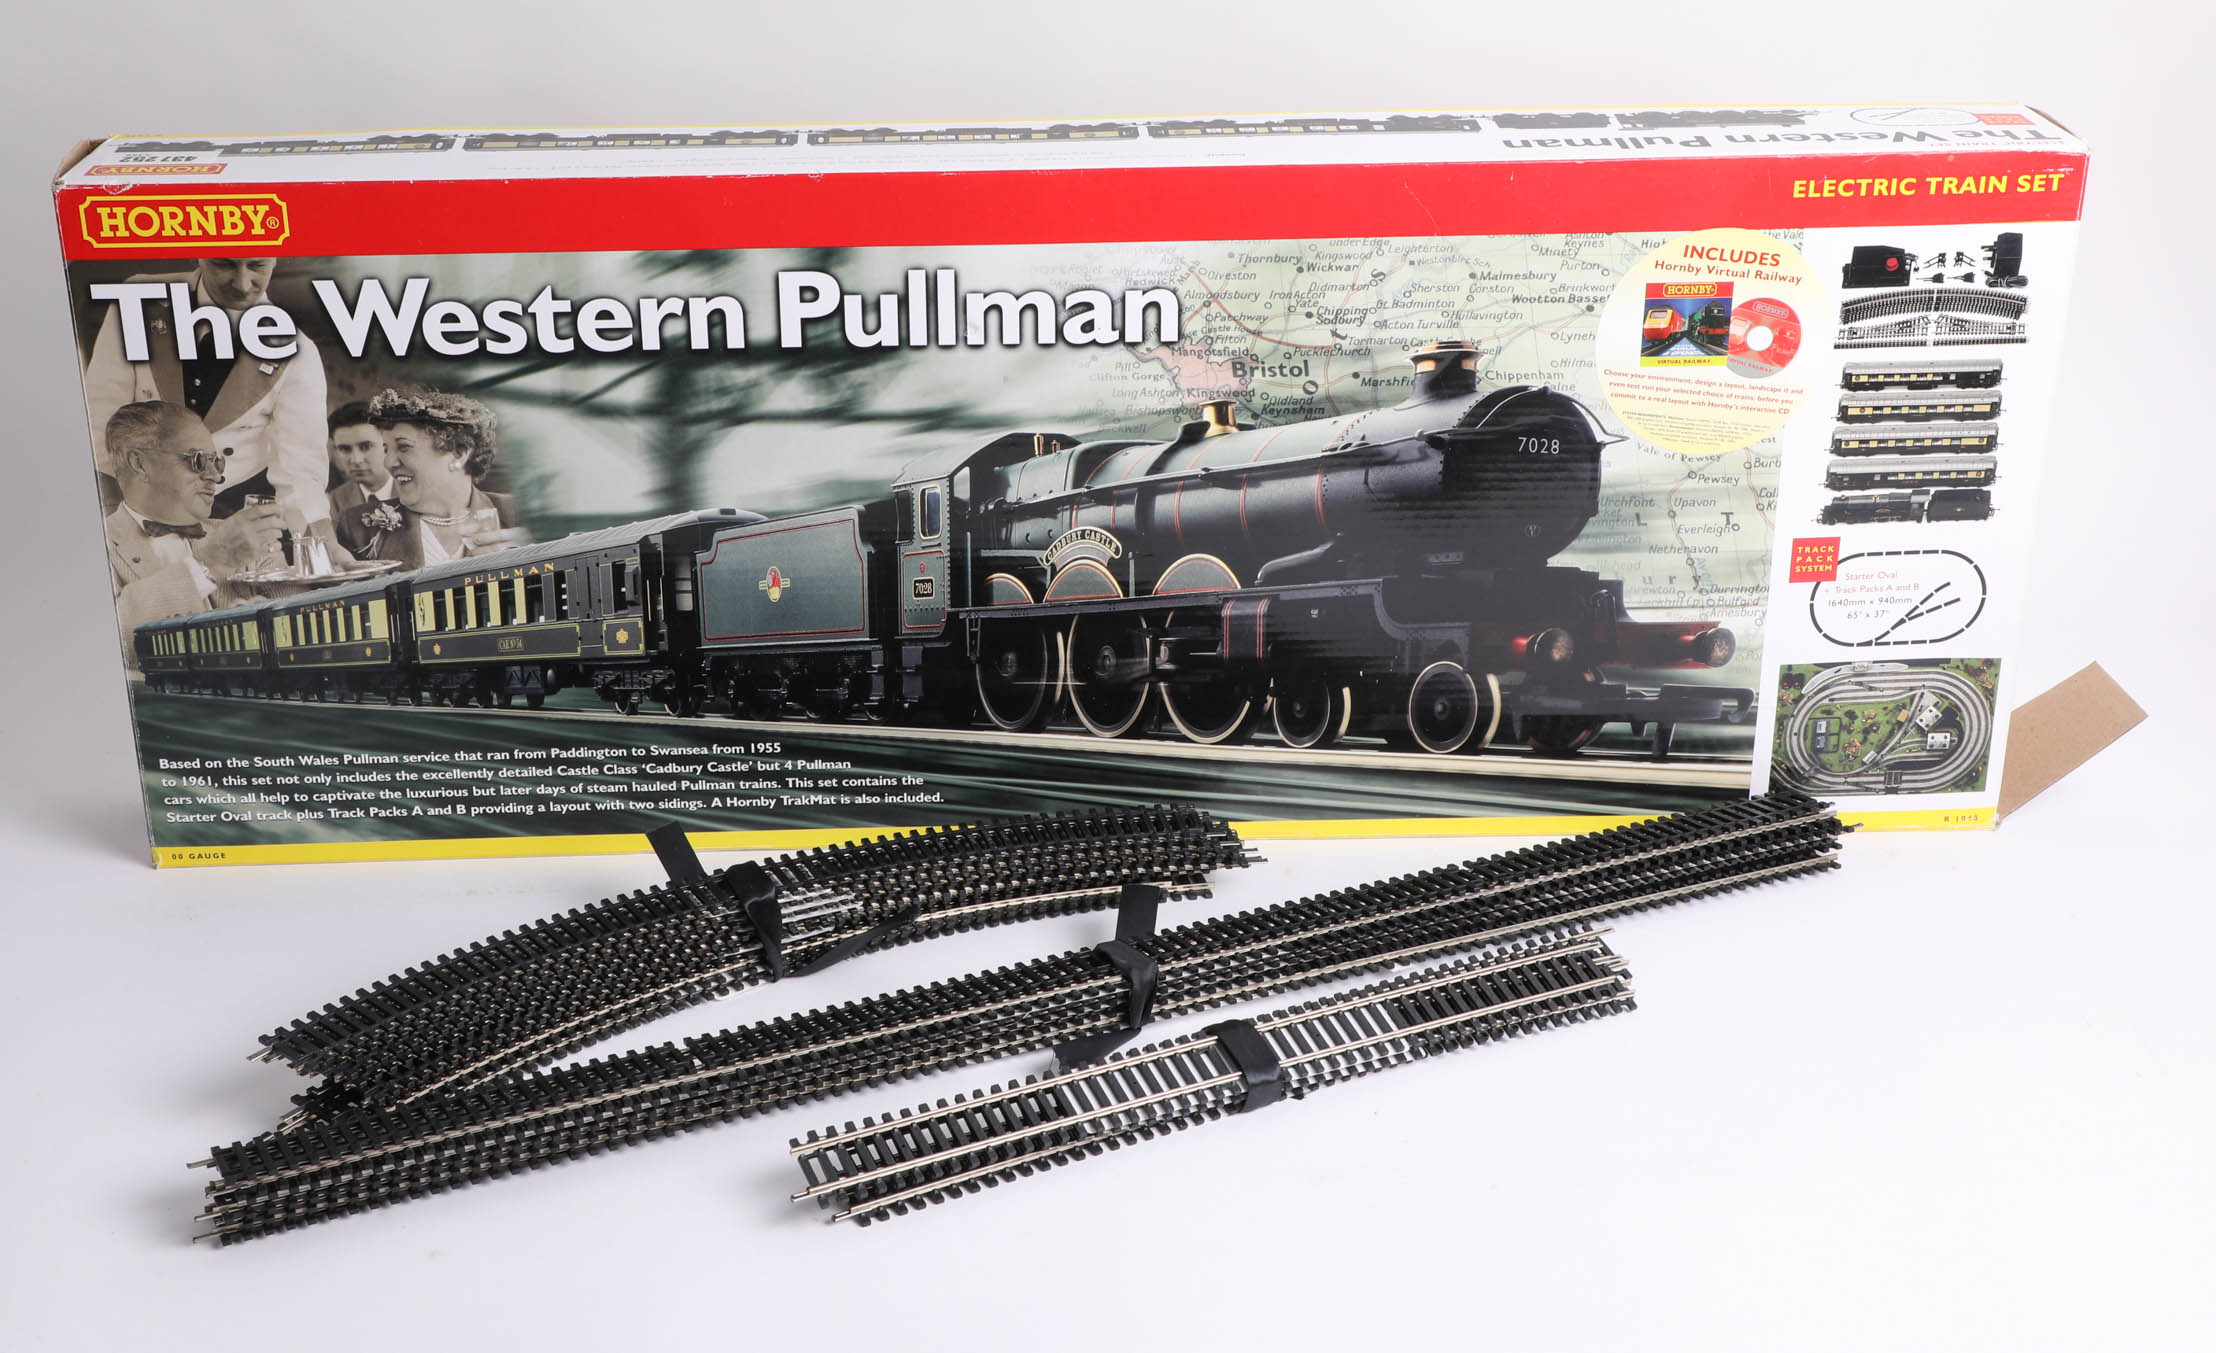 A Hornby train set 'The Western Pullman', including one locomotive, four carriages, a coal cart